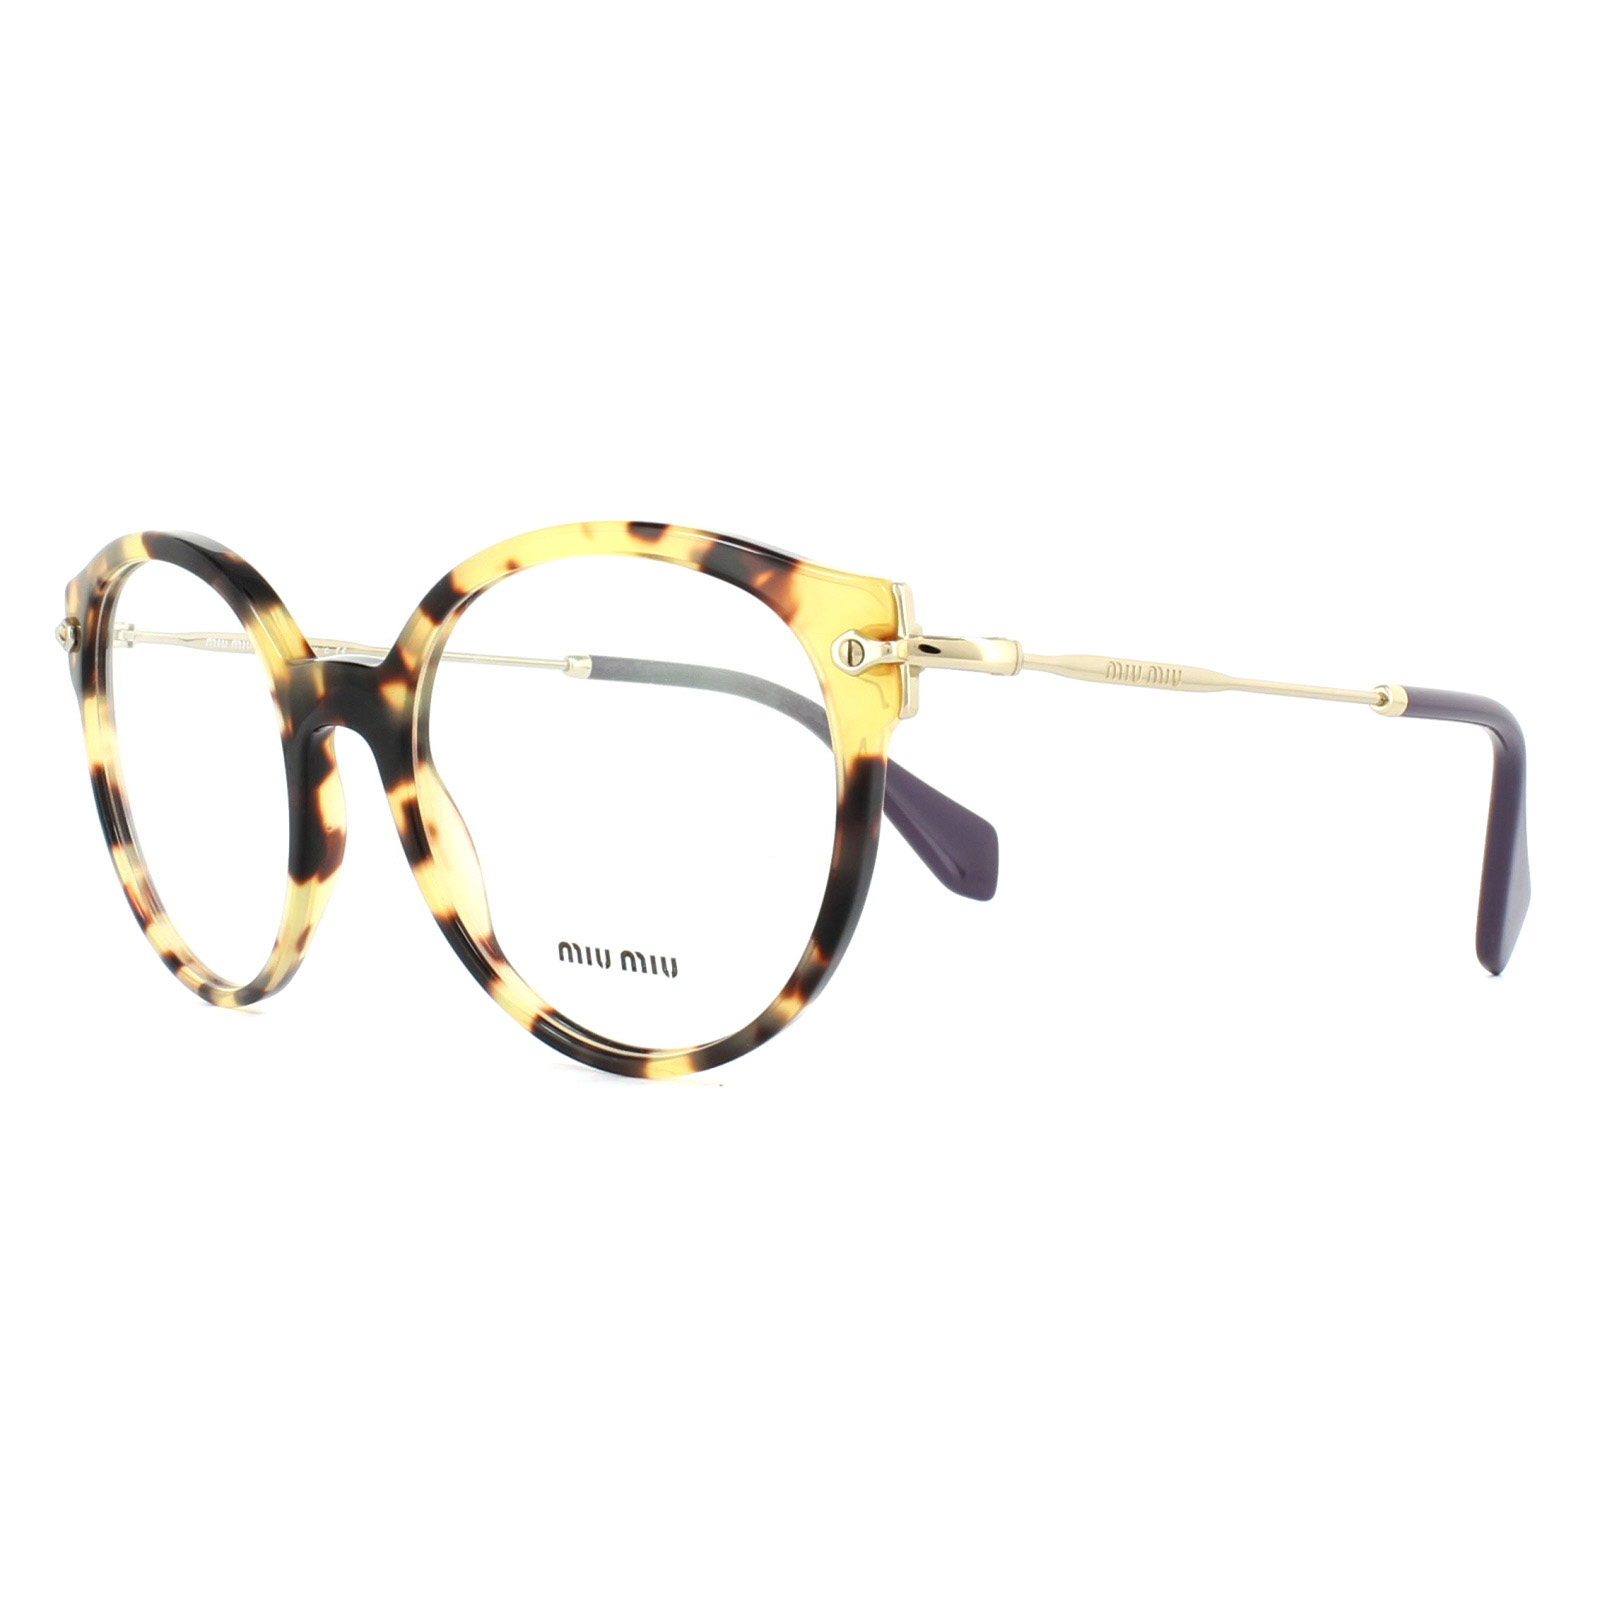 4f36f31d245 Sentinel Miu Miu Glasses Frames MU04PV 7S01O1 Light Havana 52mm Womens